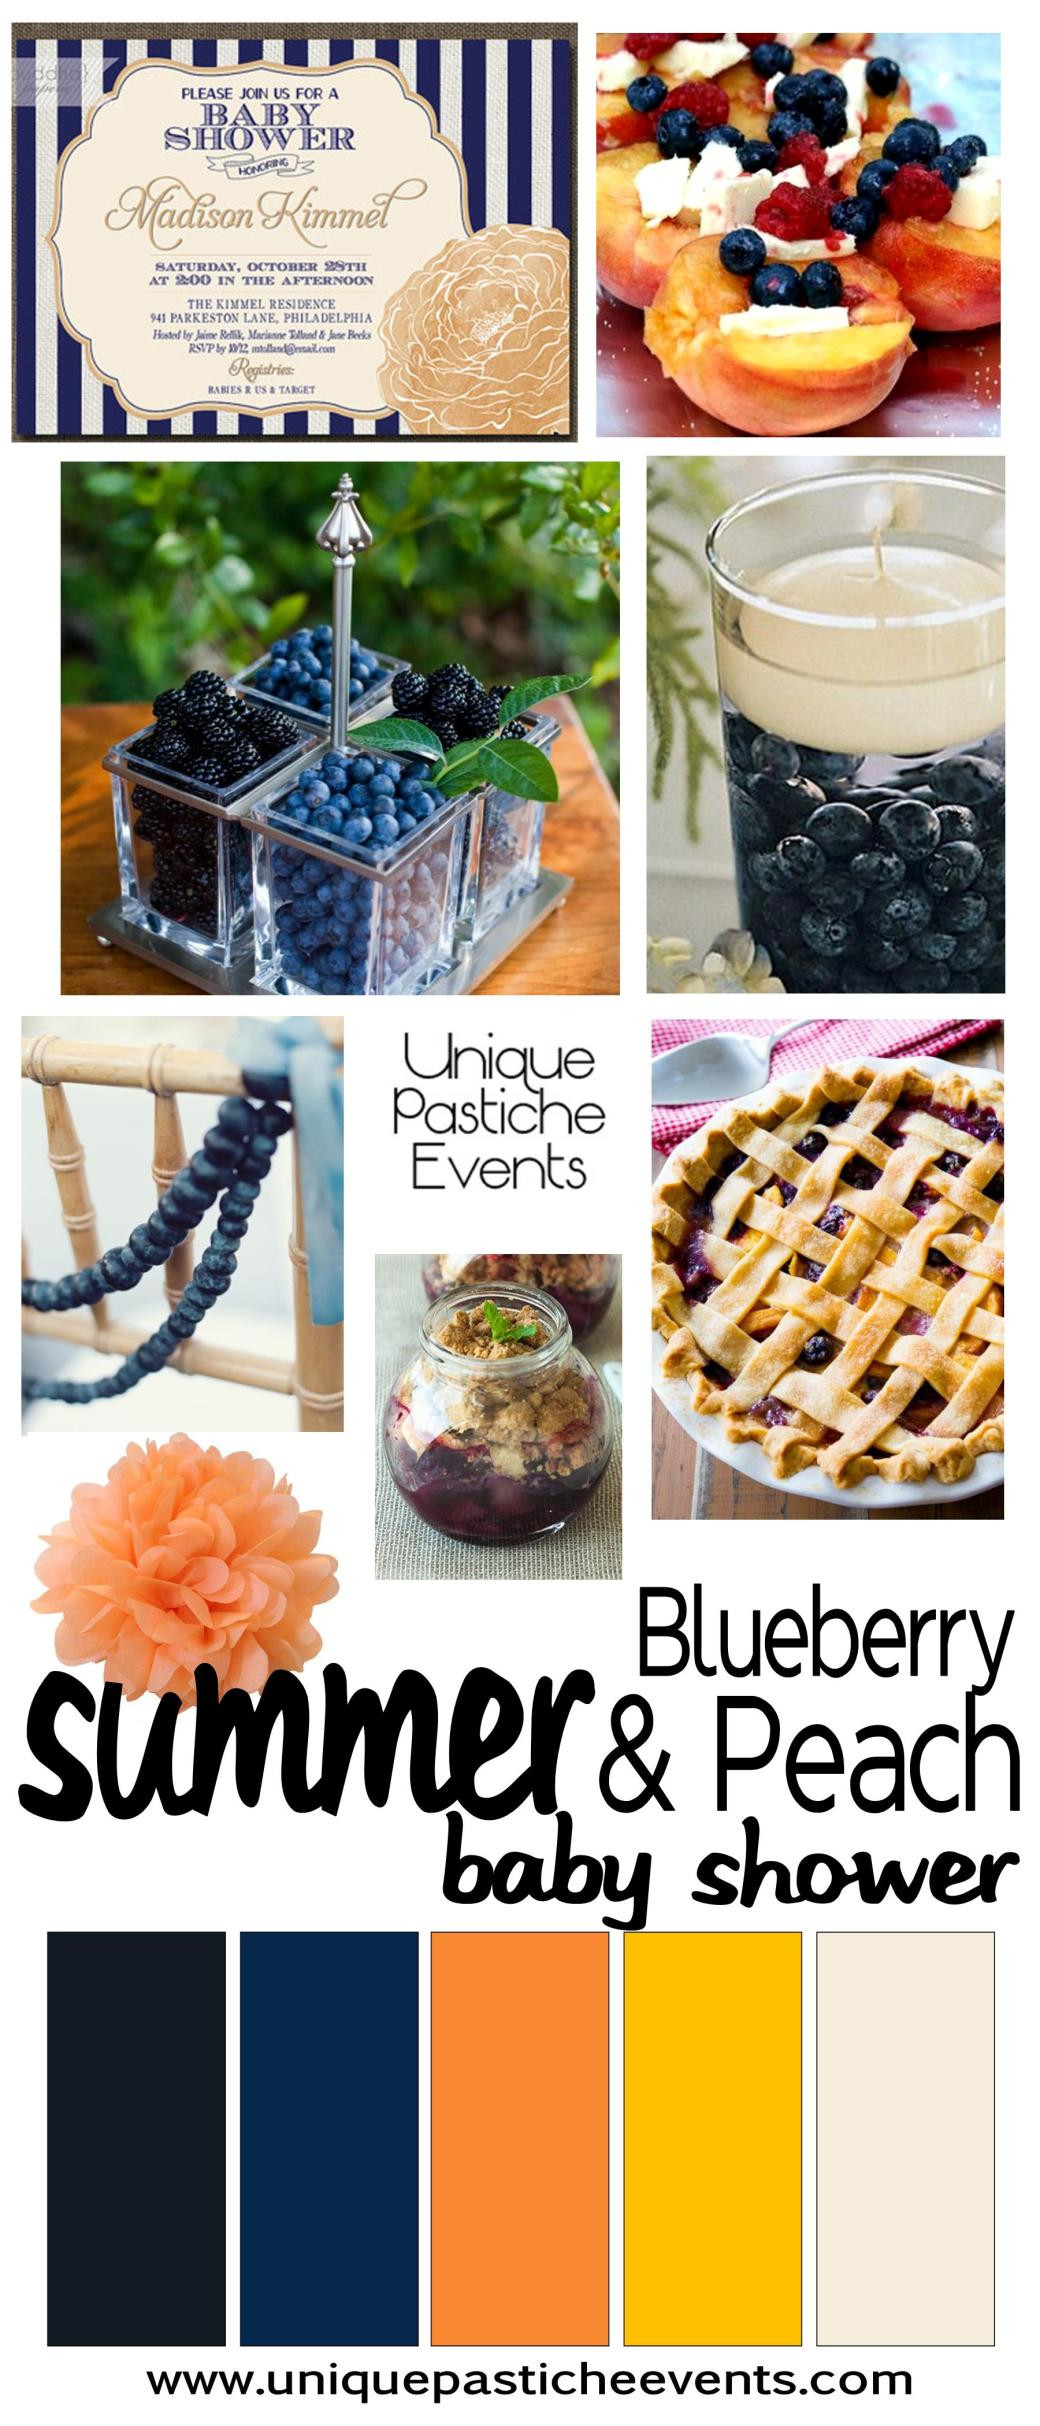 Summertime Party: Blueberry and Peach Baby Shower